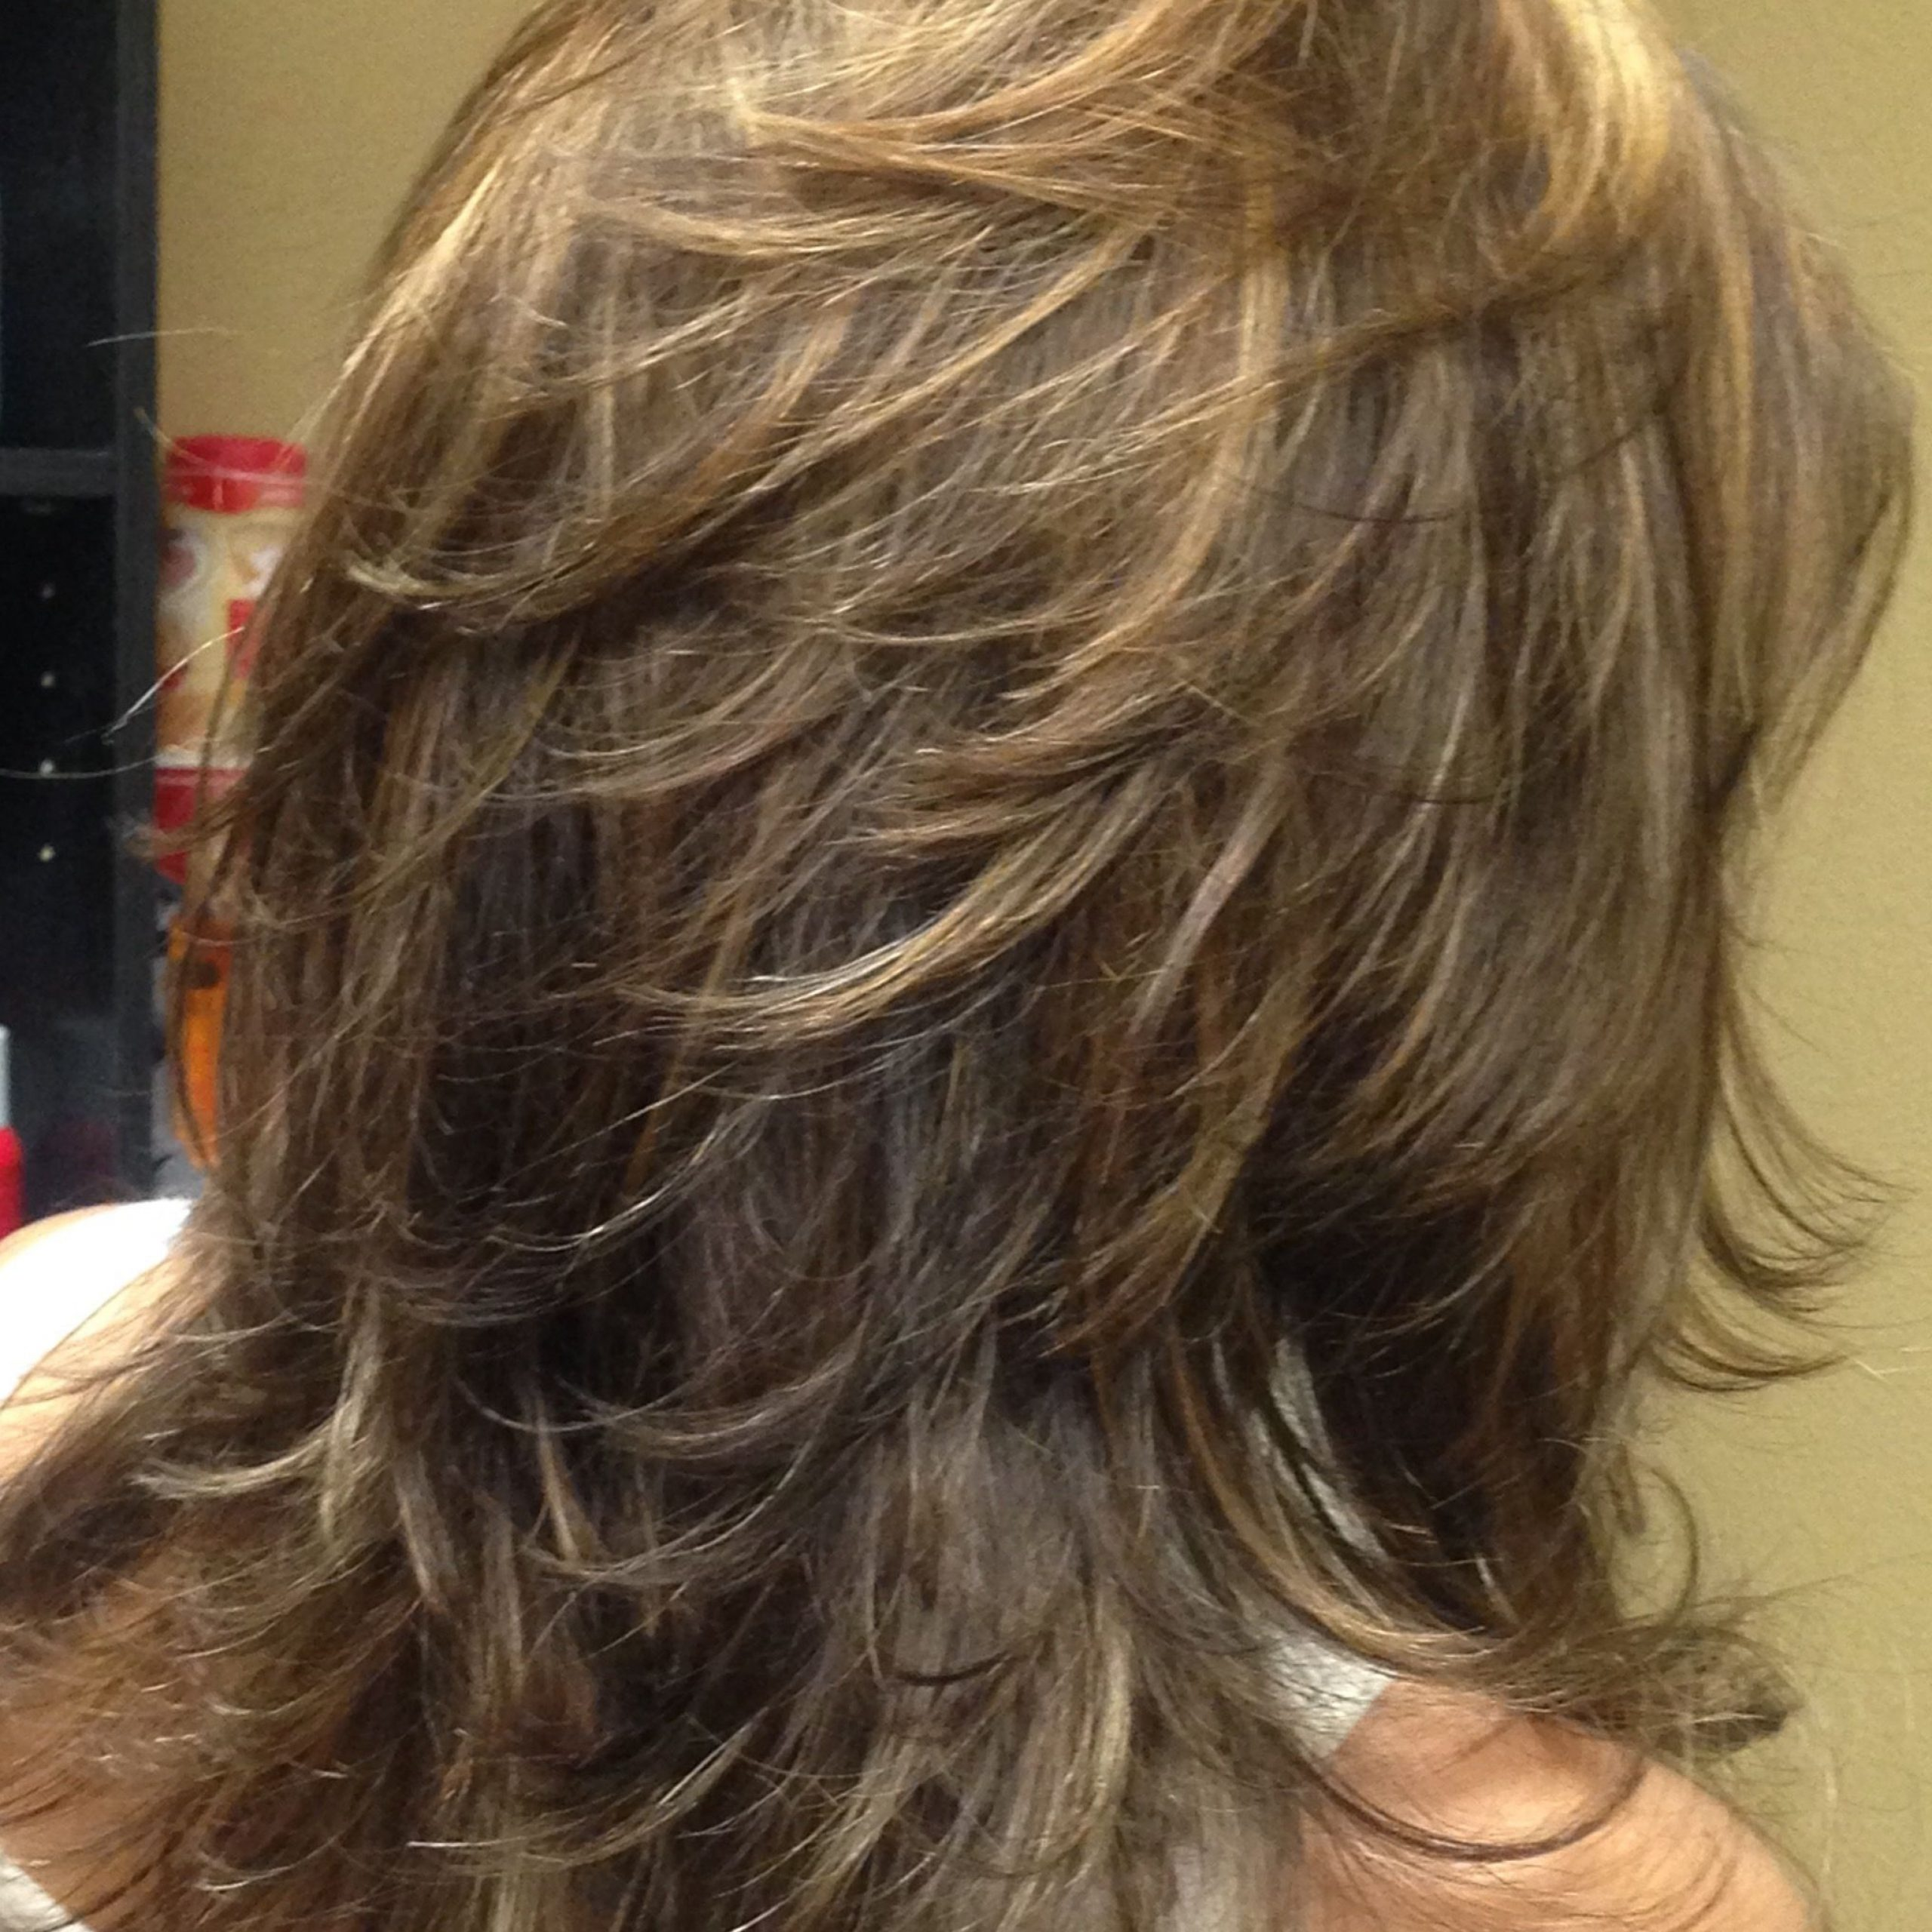 Hairstyles : Long Hair With Lots Of Choppy Layers Adorable Inside Favorite Long Layered Chop Haircuts (View 8 of 20)